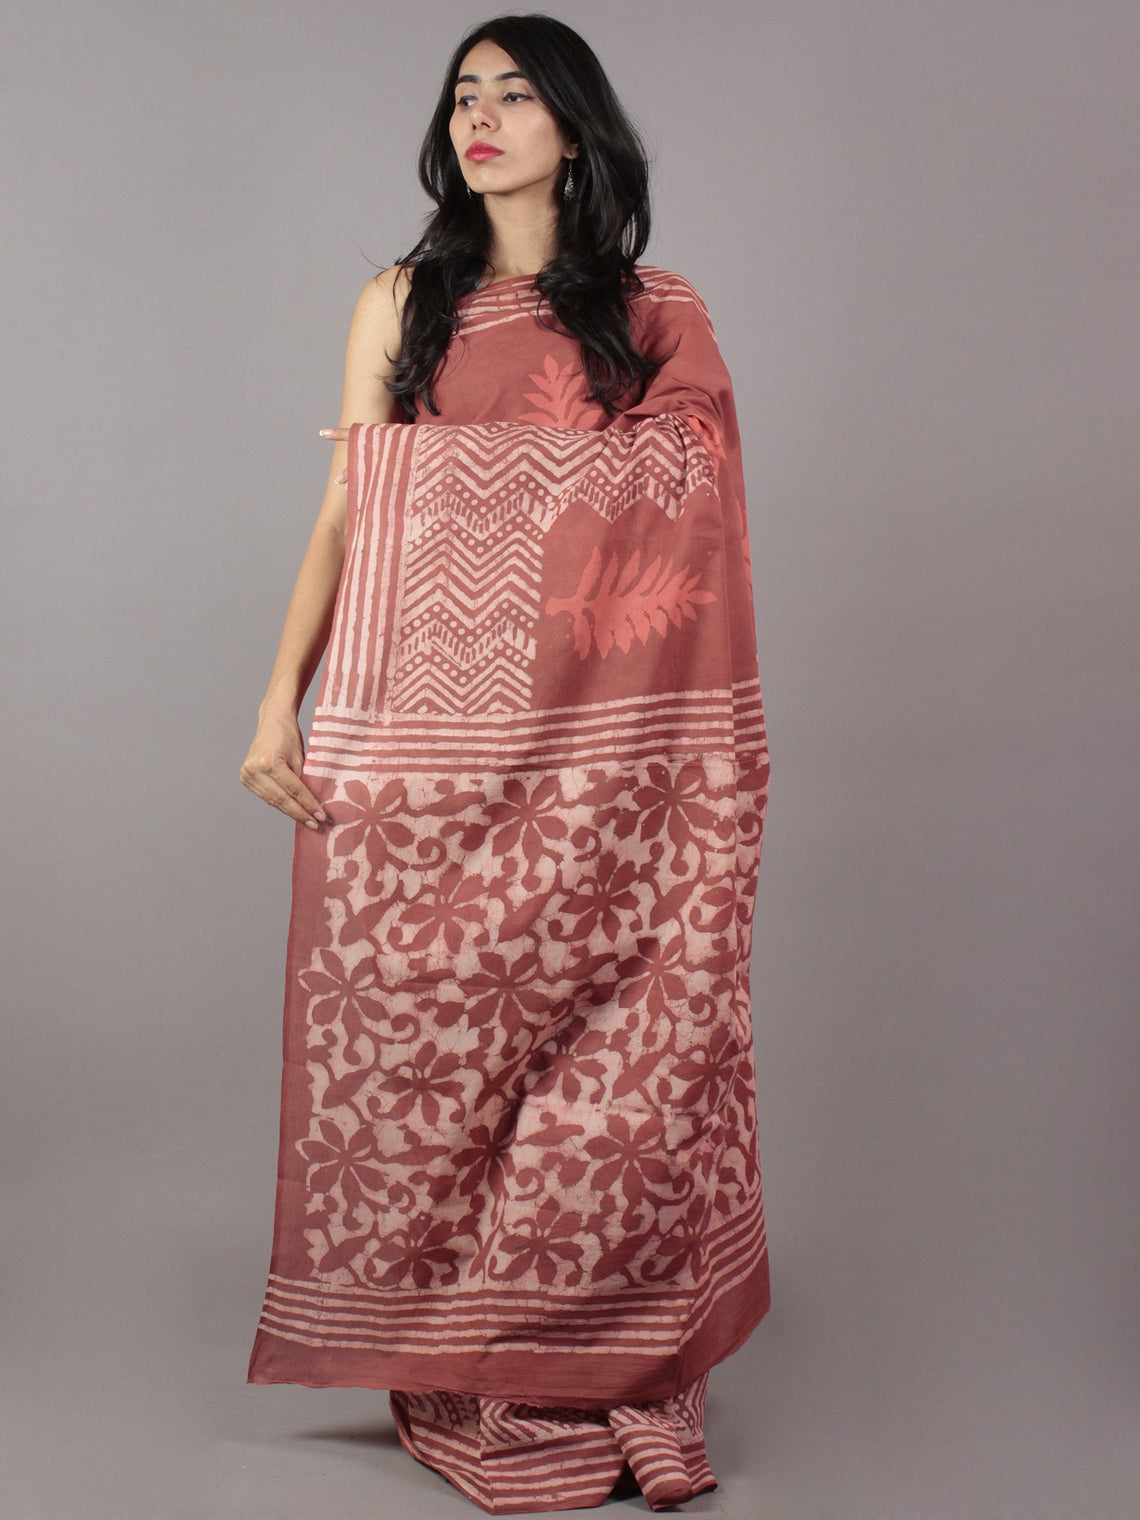 Rust Ivory Hand Block Printed Cotton Saree - S031701757